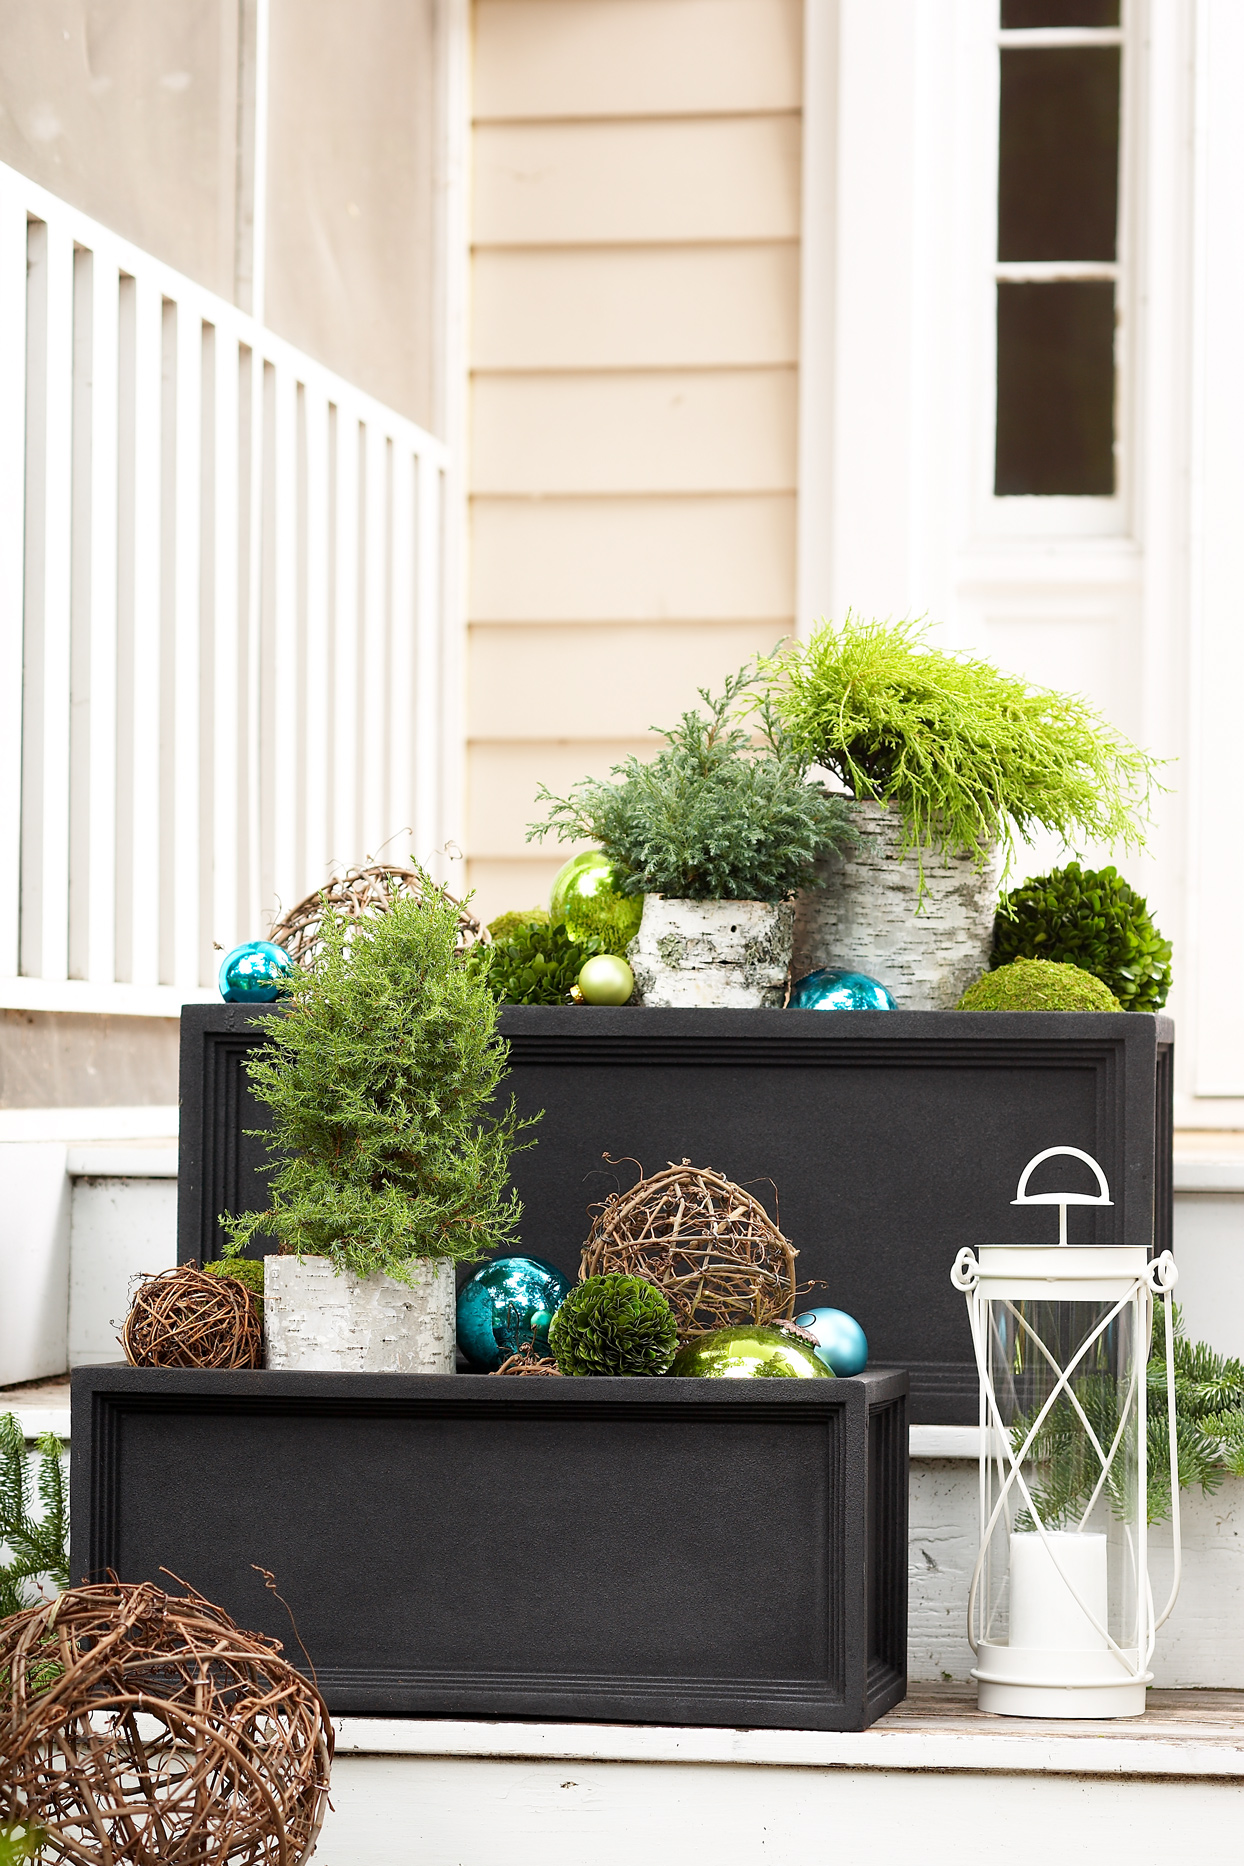 outdoor planters containing colorful ornaments and greenery